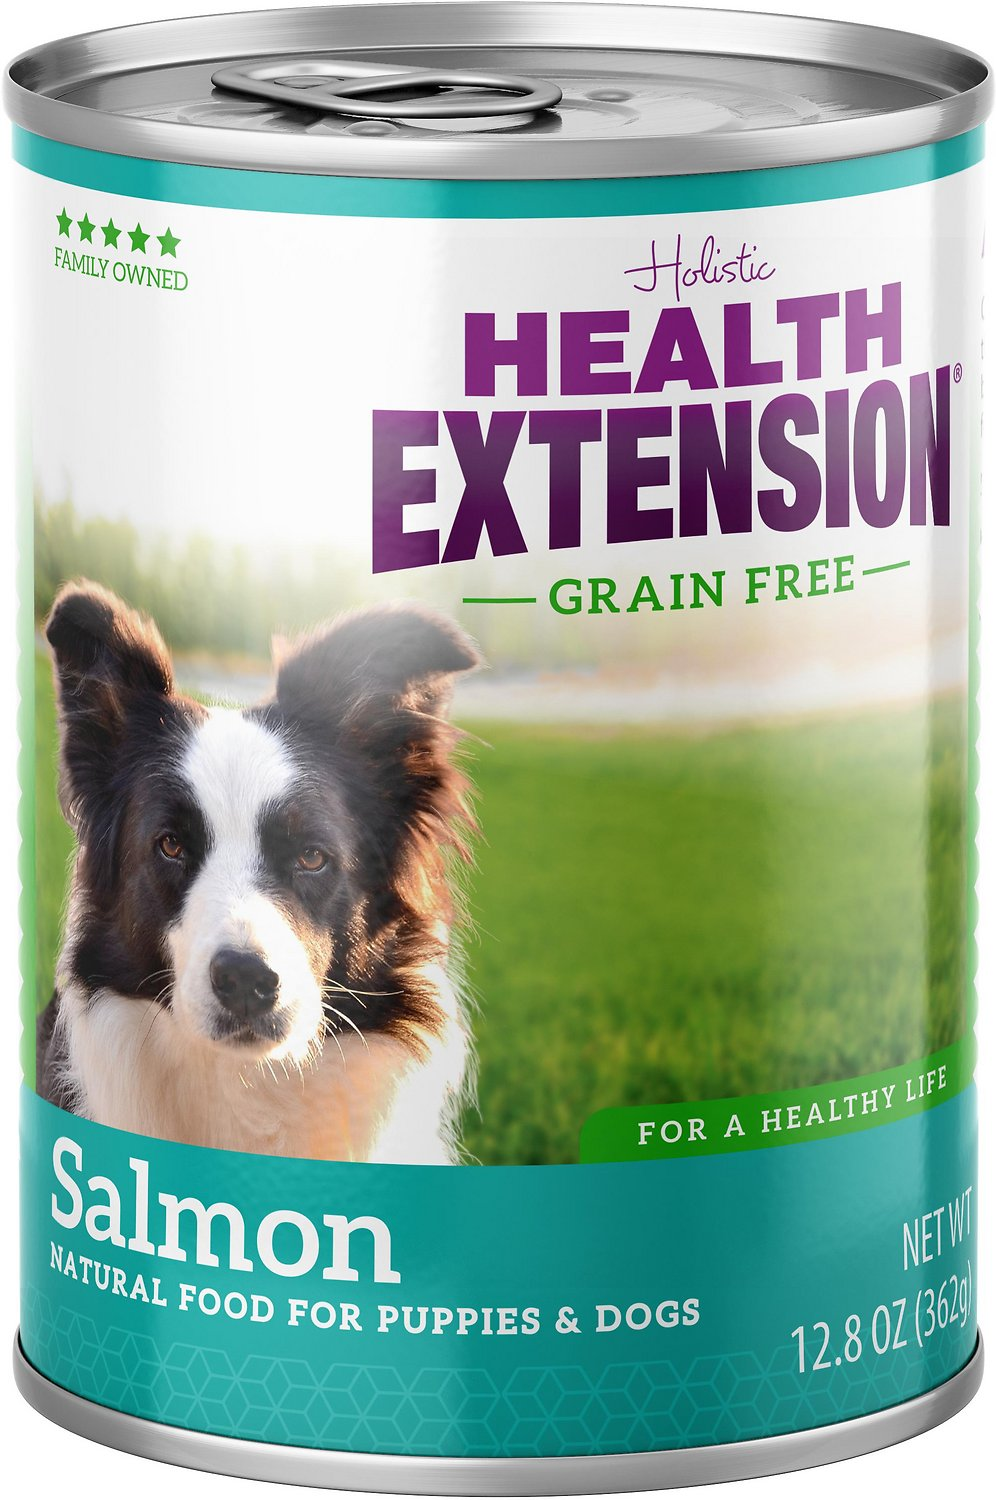 Health Extension Grain-Free Salmon Entree Canned Dog Food, 12.8-oz